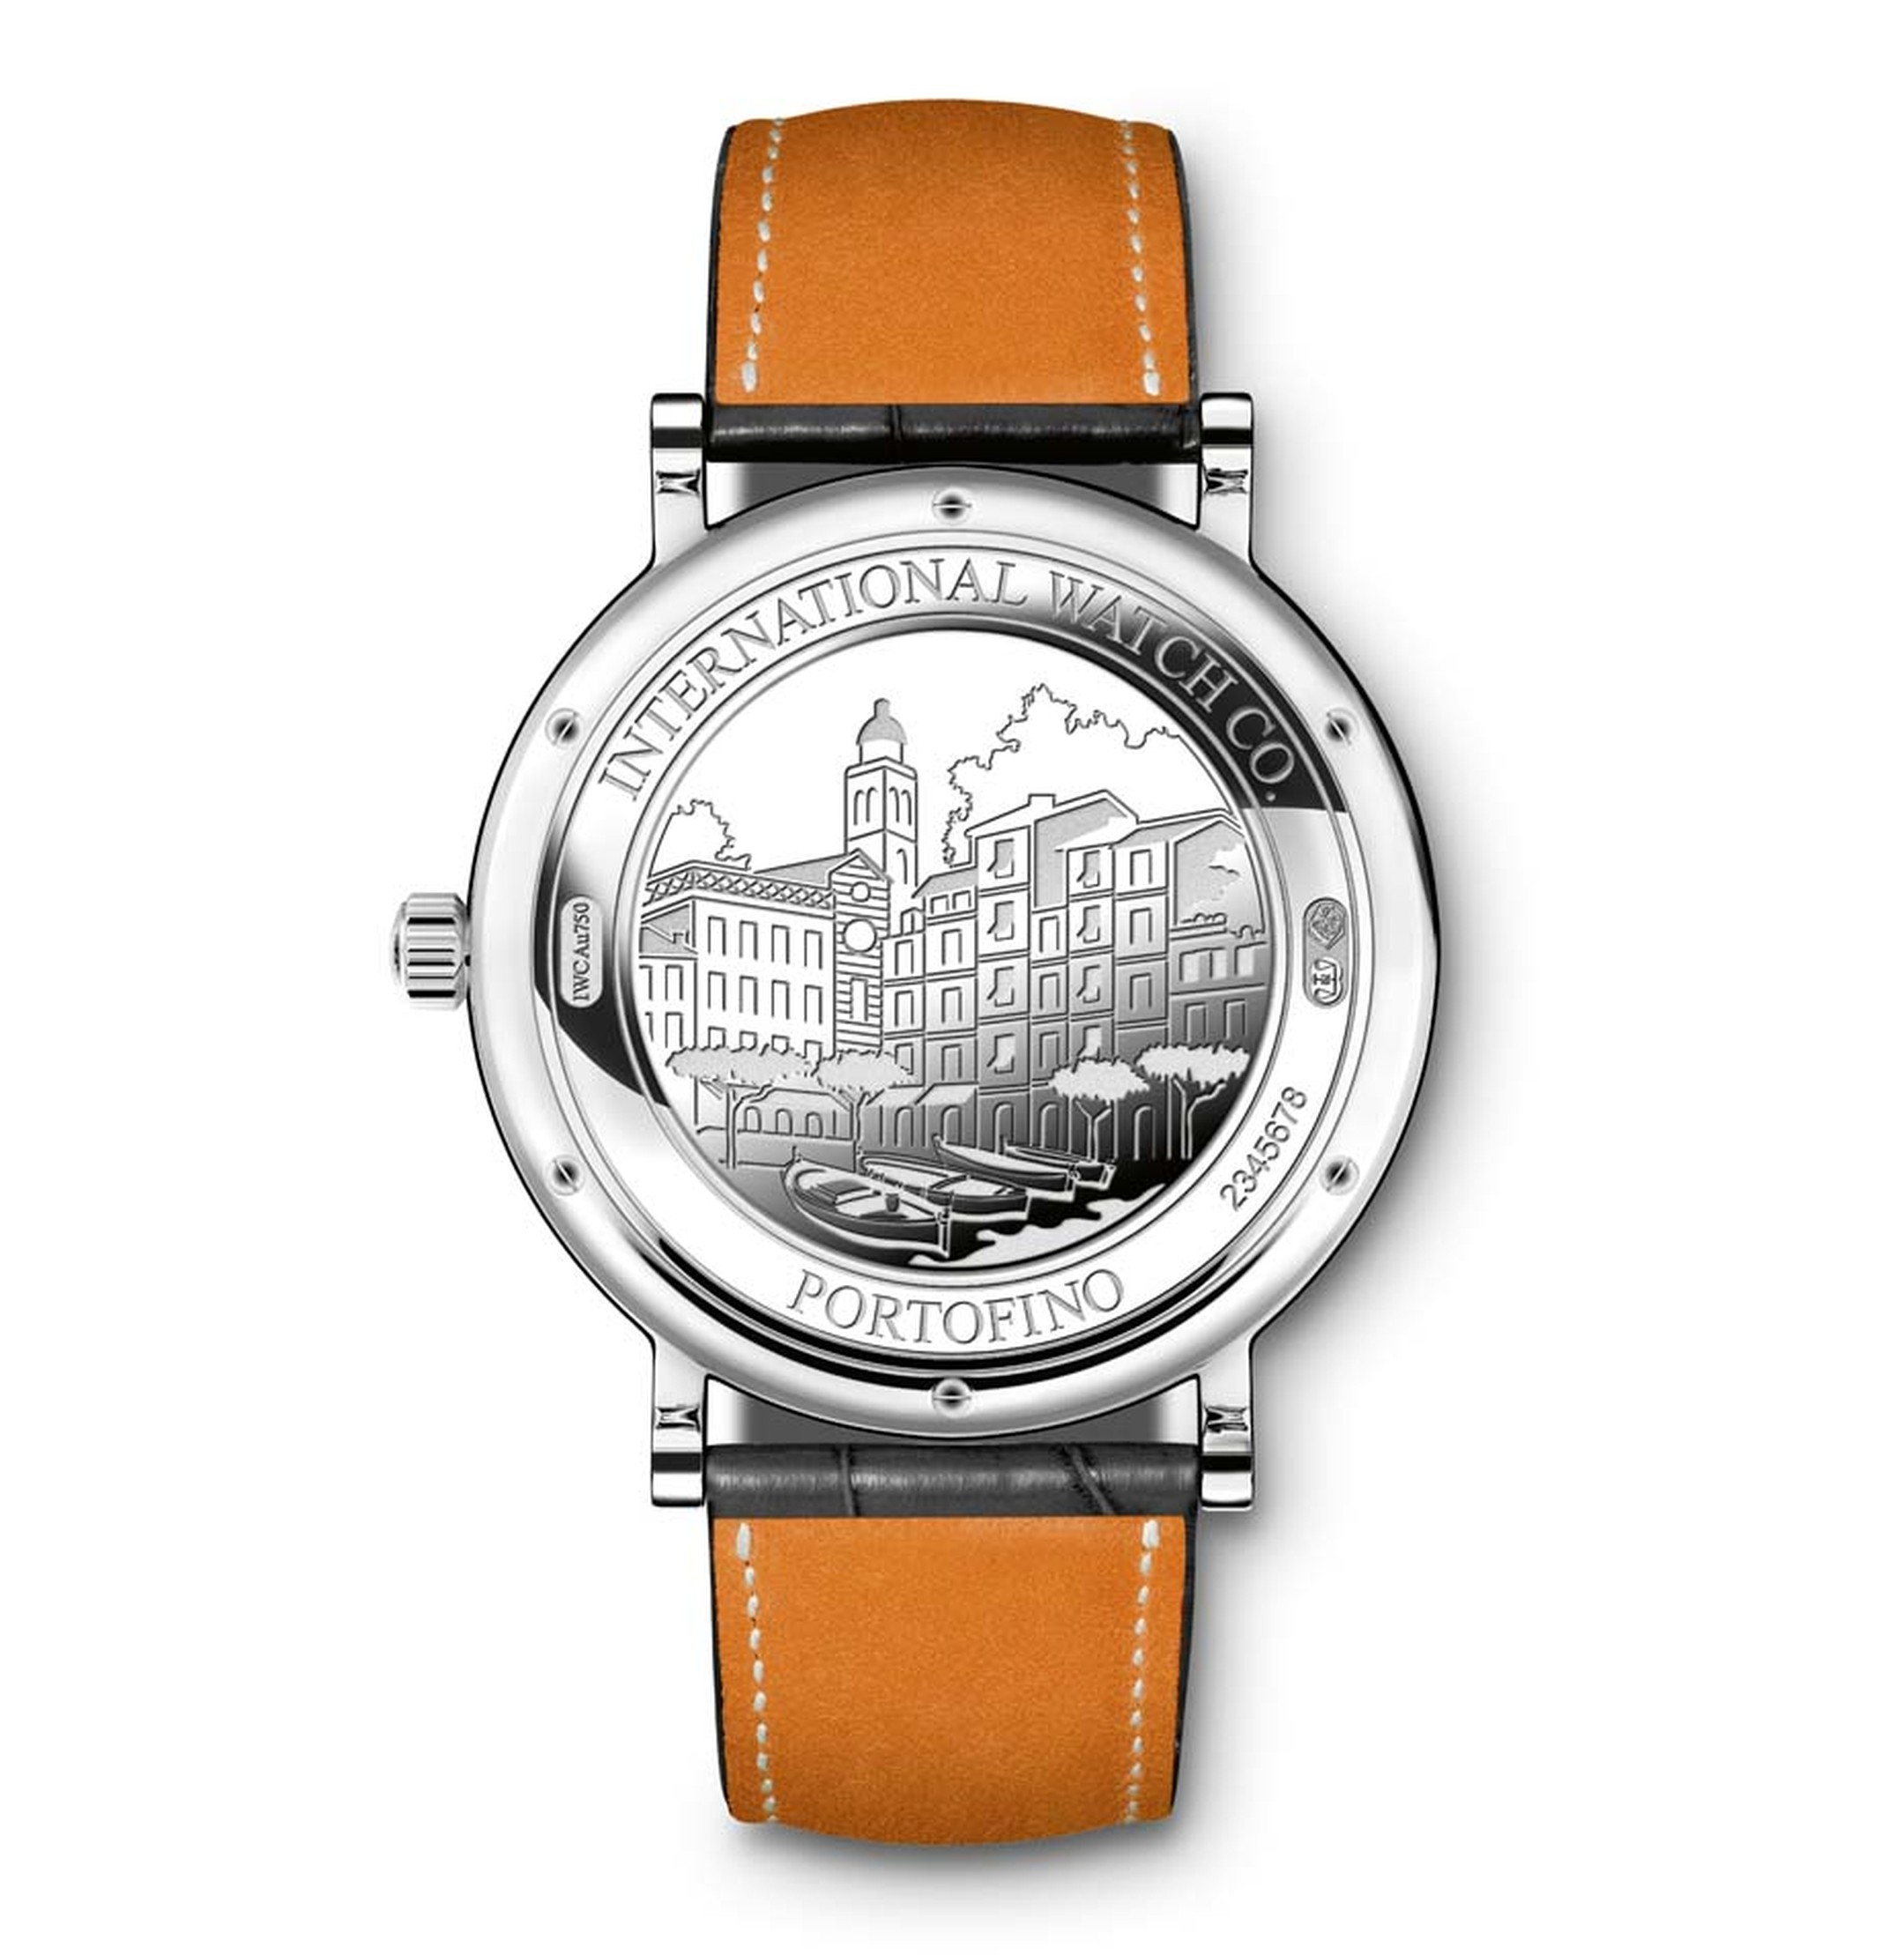 The case of each IWC Portofino watch is decorated on the back with an engraving of Portofino harbour.